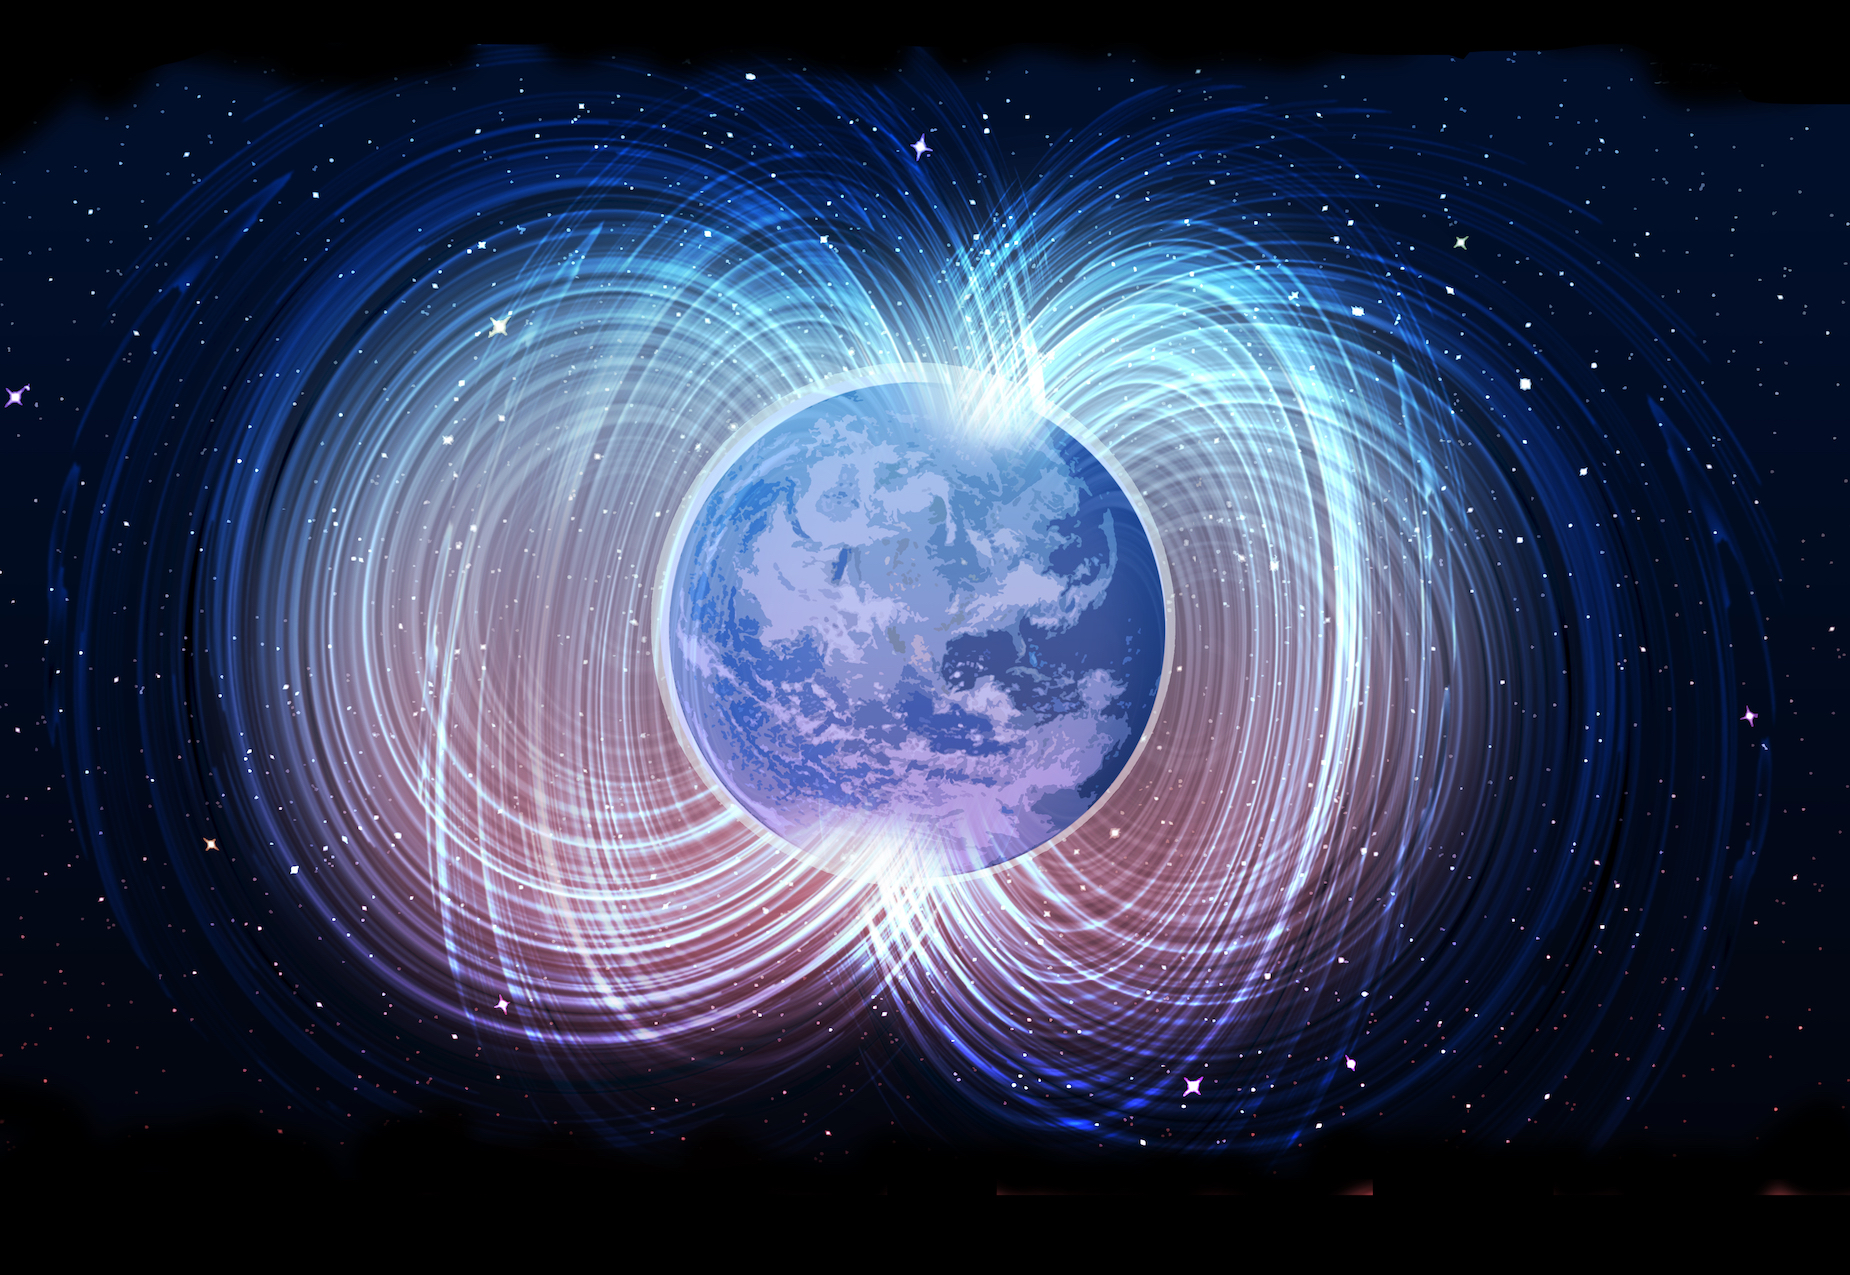 Earth's magnetic field has shown signs of weakening, which could indicate the poles are about to flip in the not-so-distant future.